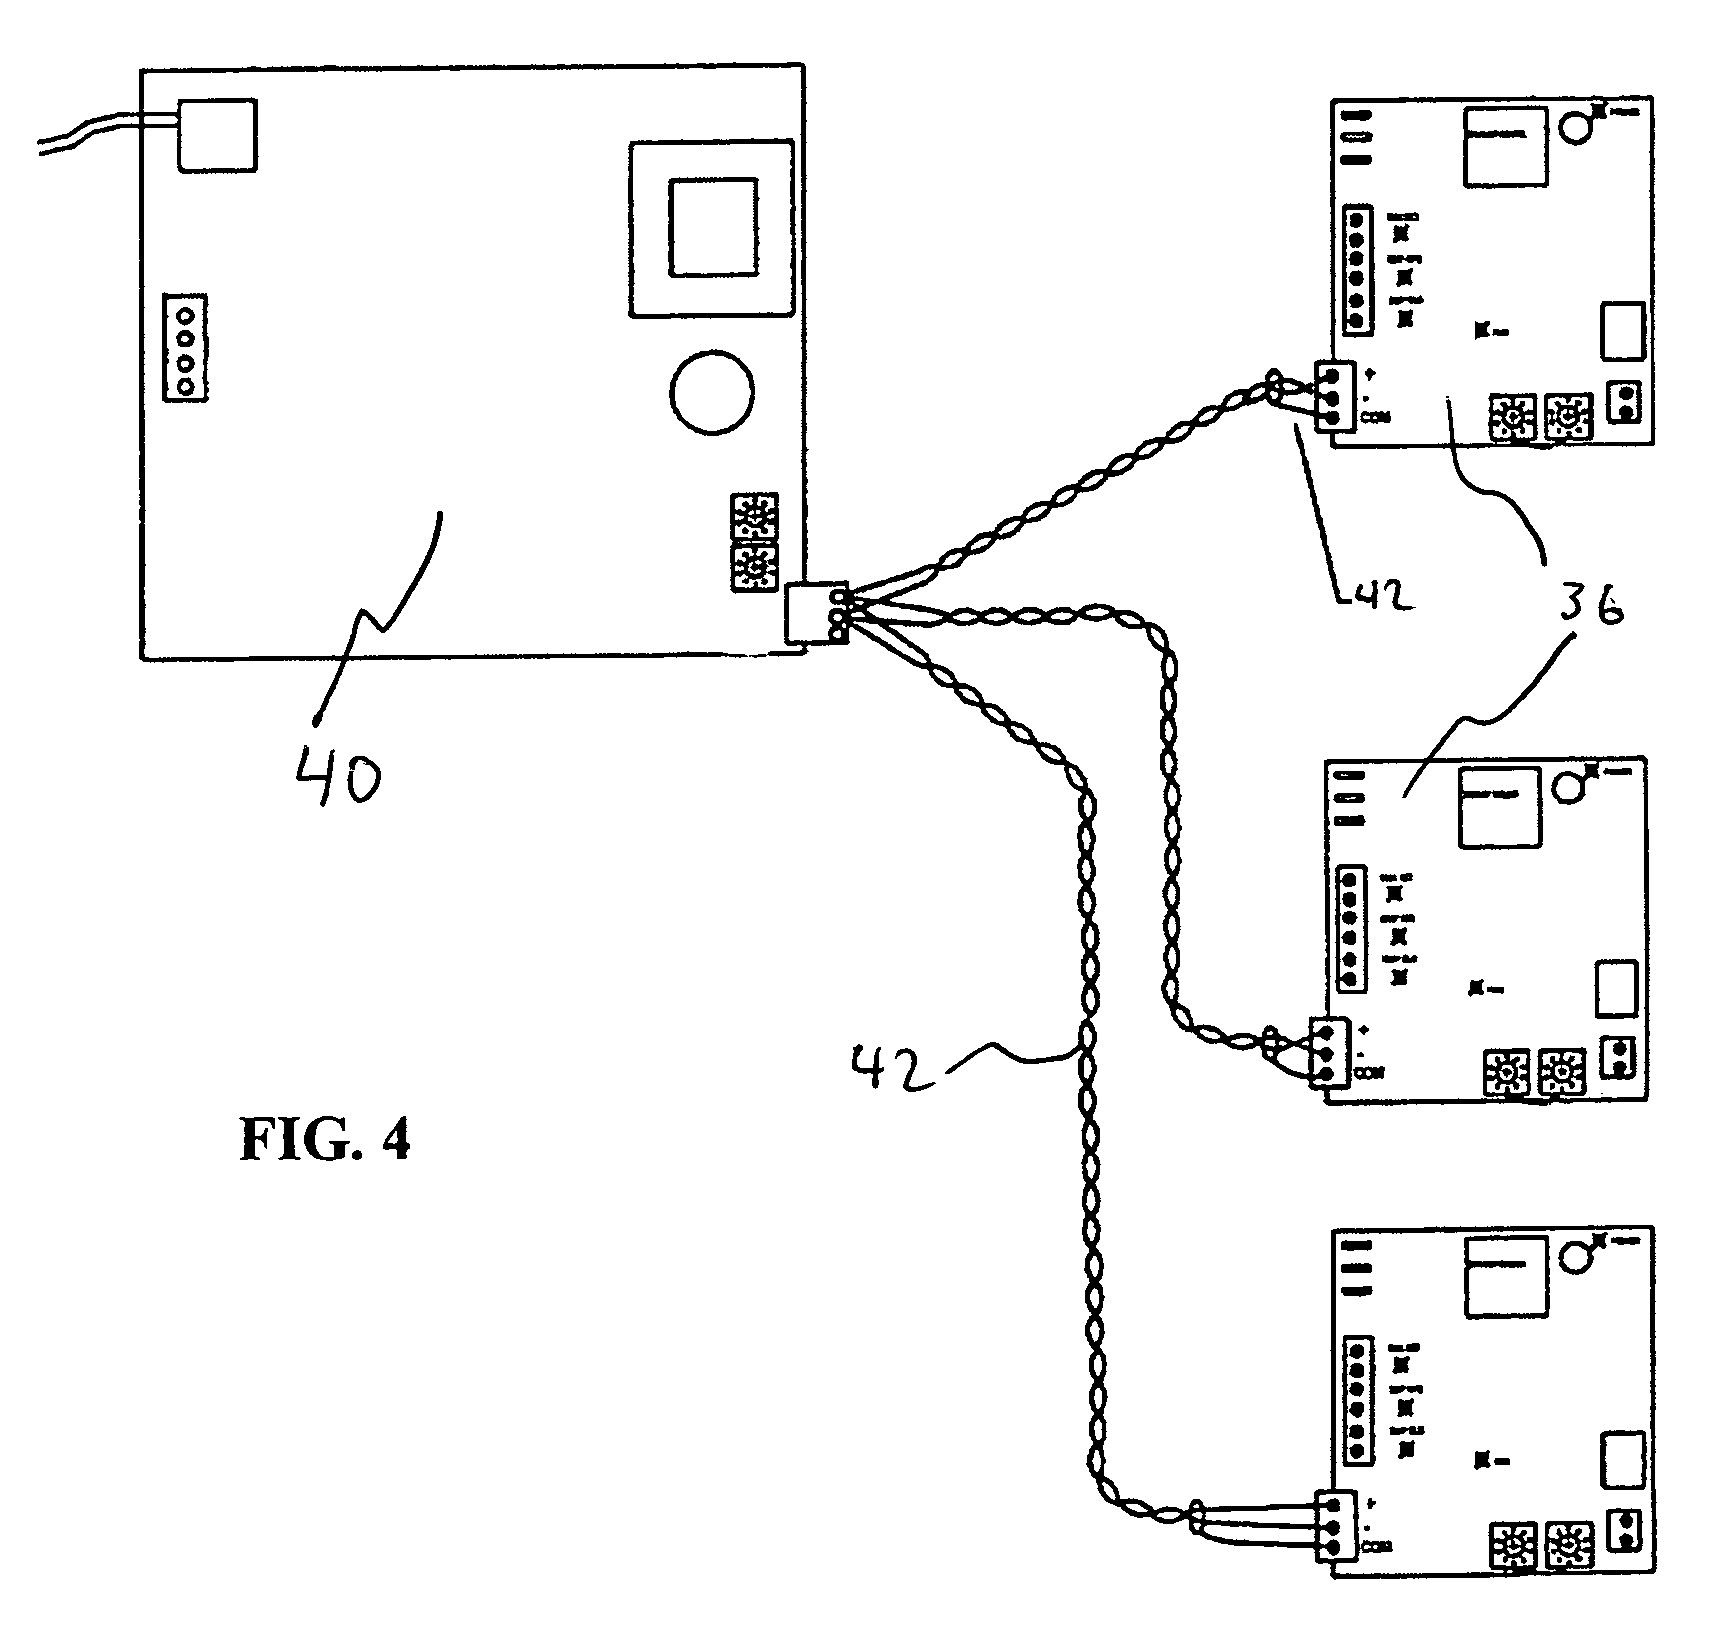 Control Relay Wiring Diagram For Fire Dampers Wiring Library